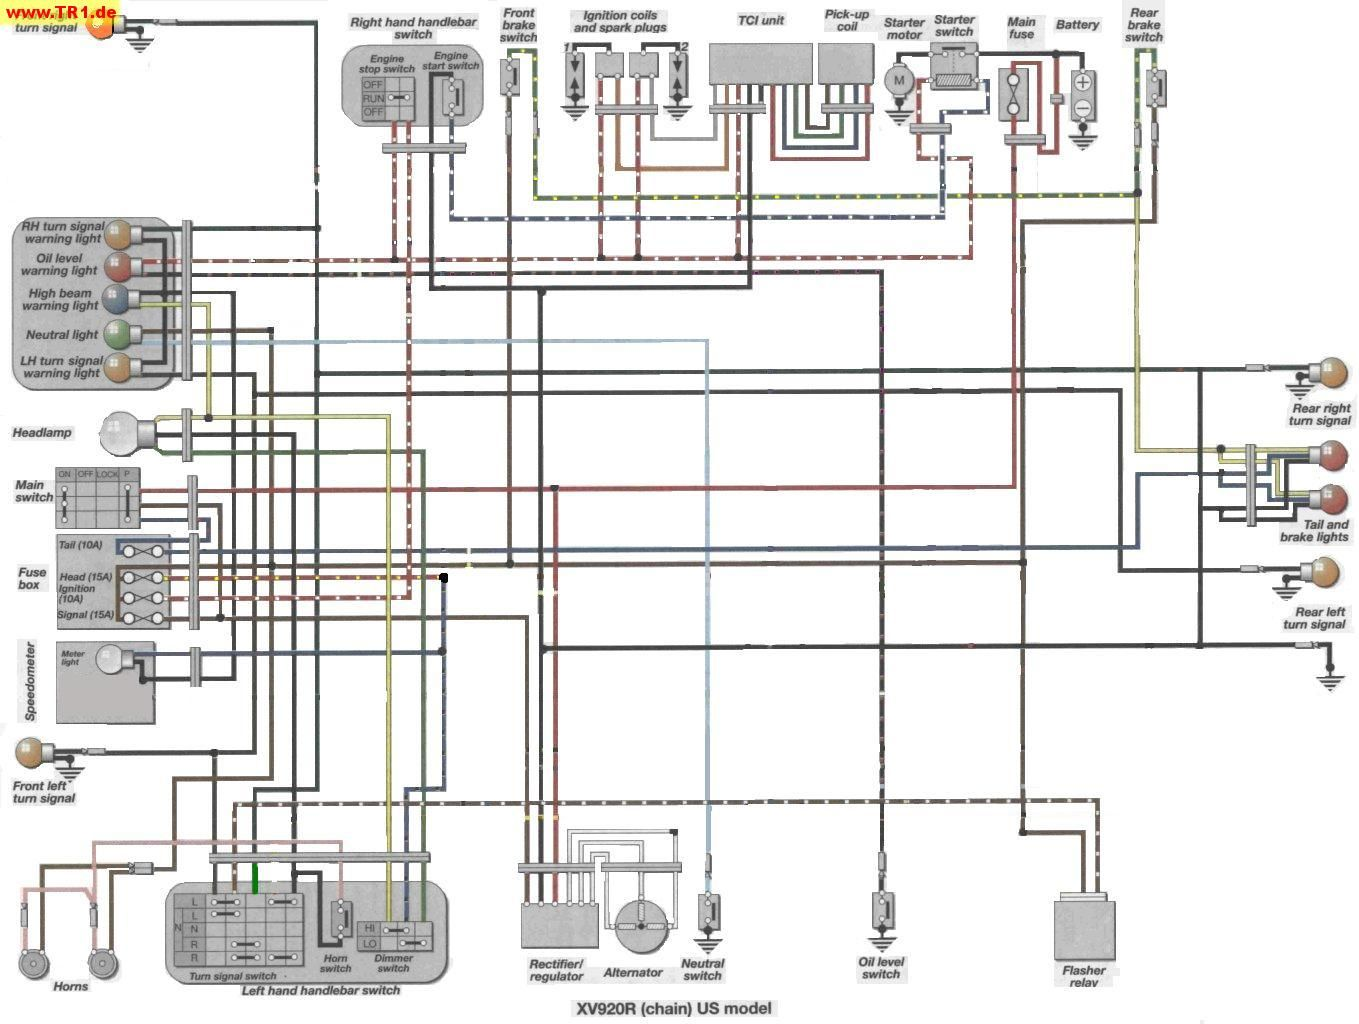 small resolution of xv920 wiring diagram wiring diagram weektr1 xv1000 xv920 wiring diagrams manfred u0027s tr1 page all